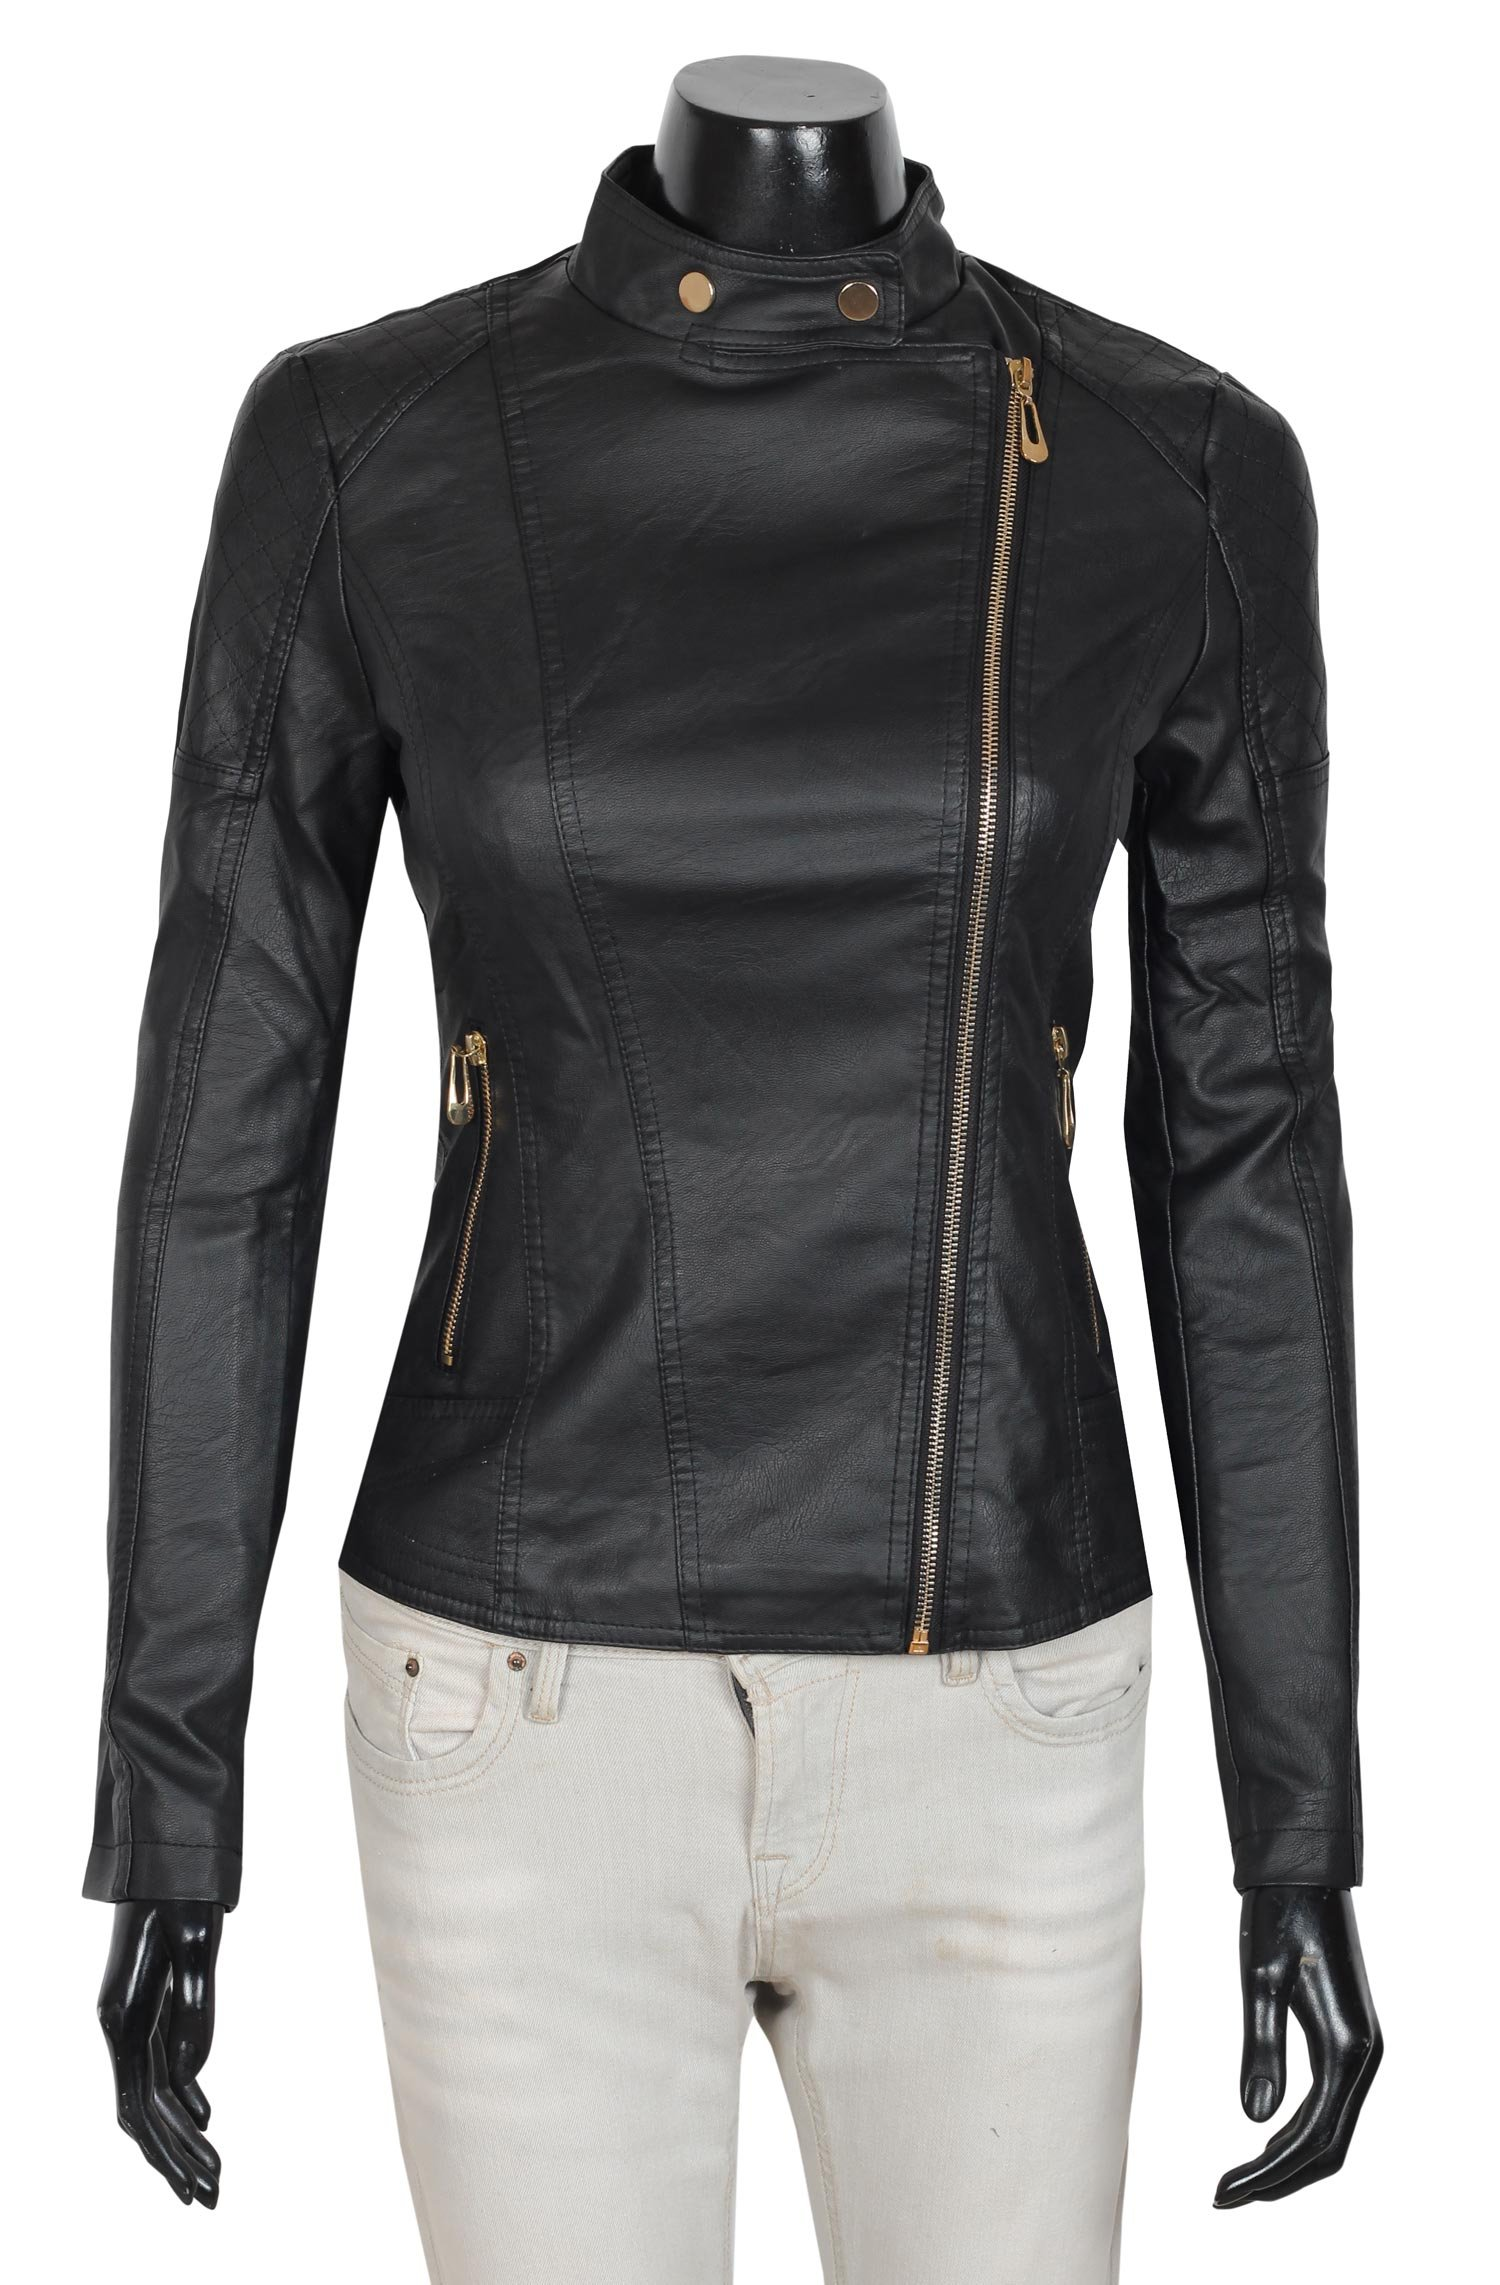 Decrum Womens Leather Jackets Collection | Women Leather Jackets Collection (S, Black - Style 5)